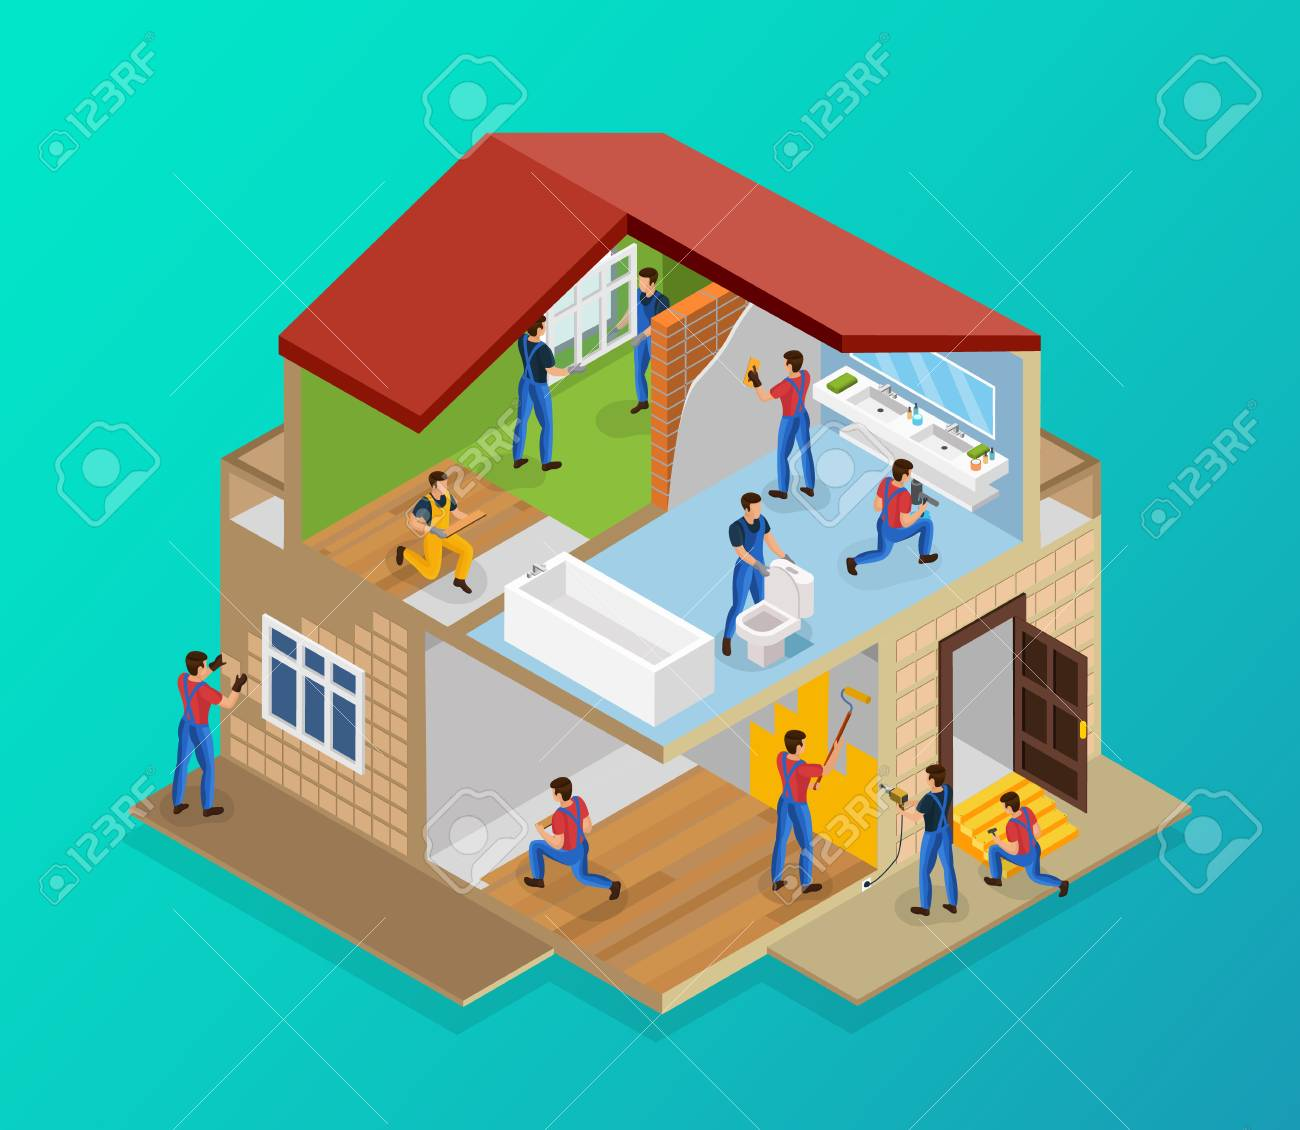 Isometric house renovation template with workers laying tiles flooring laminate painting walls repairing threshold installing windows plumbing vector illustration - 100264100